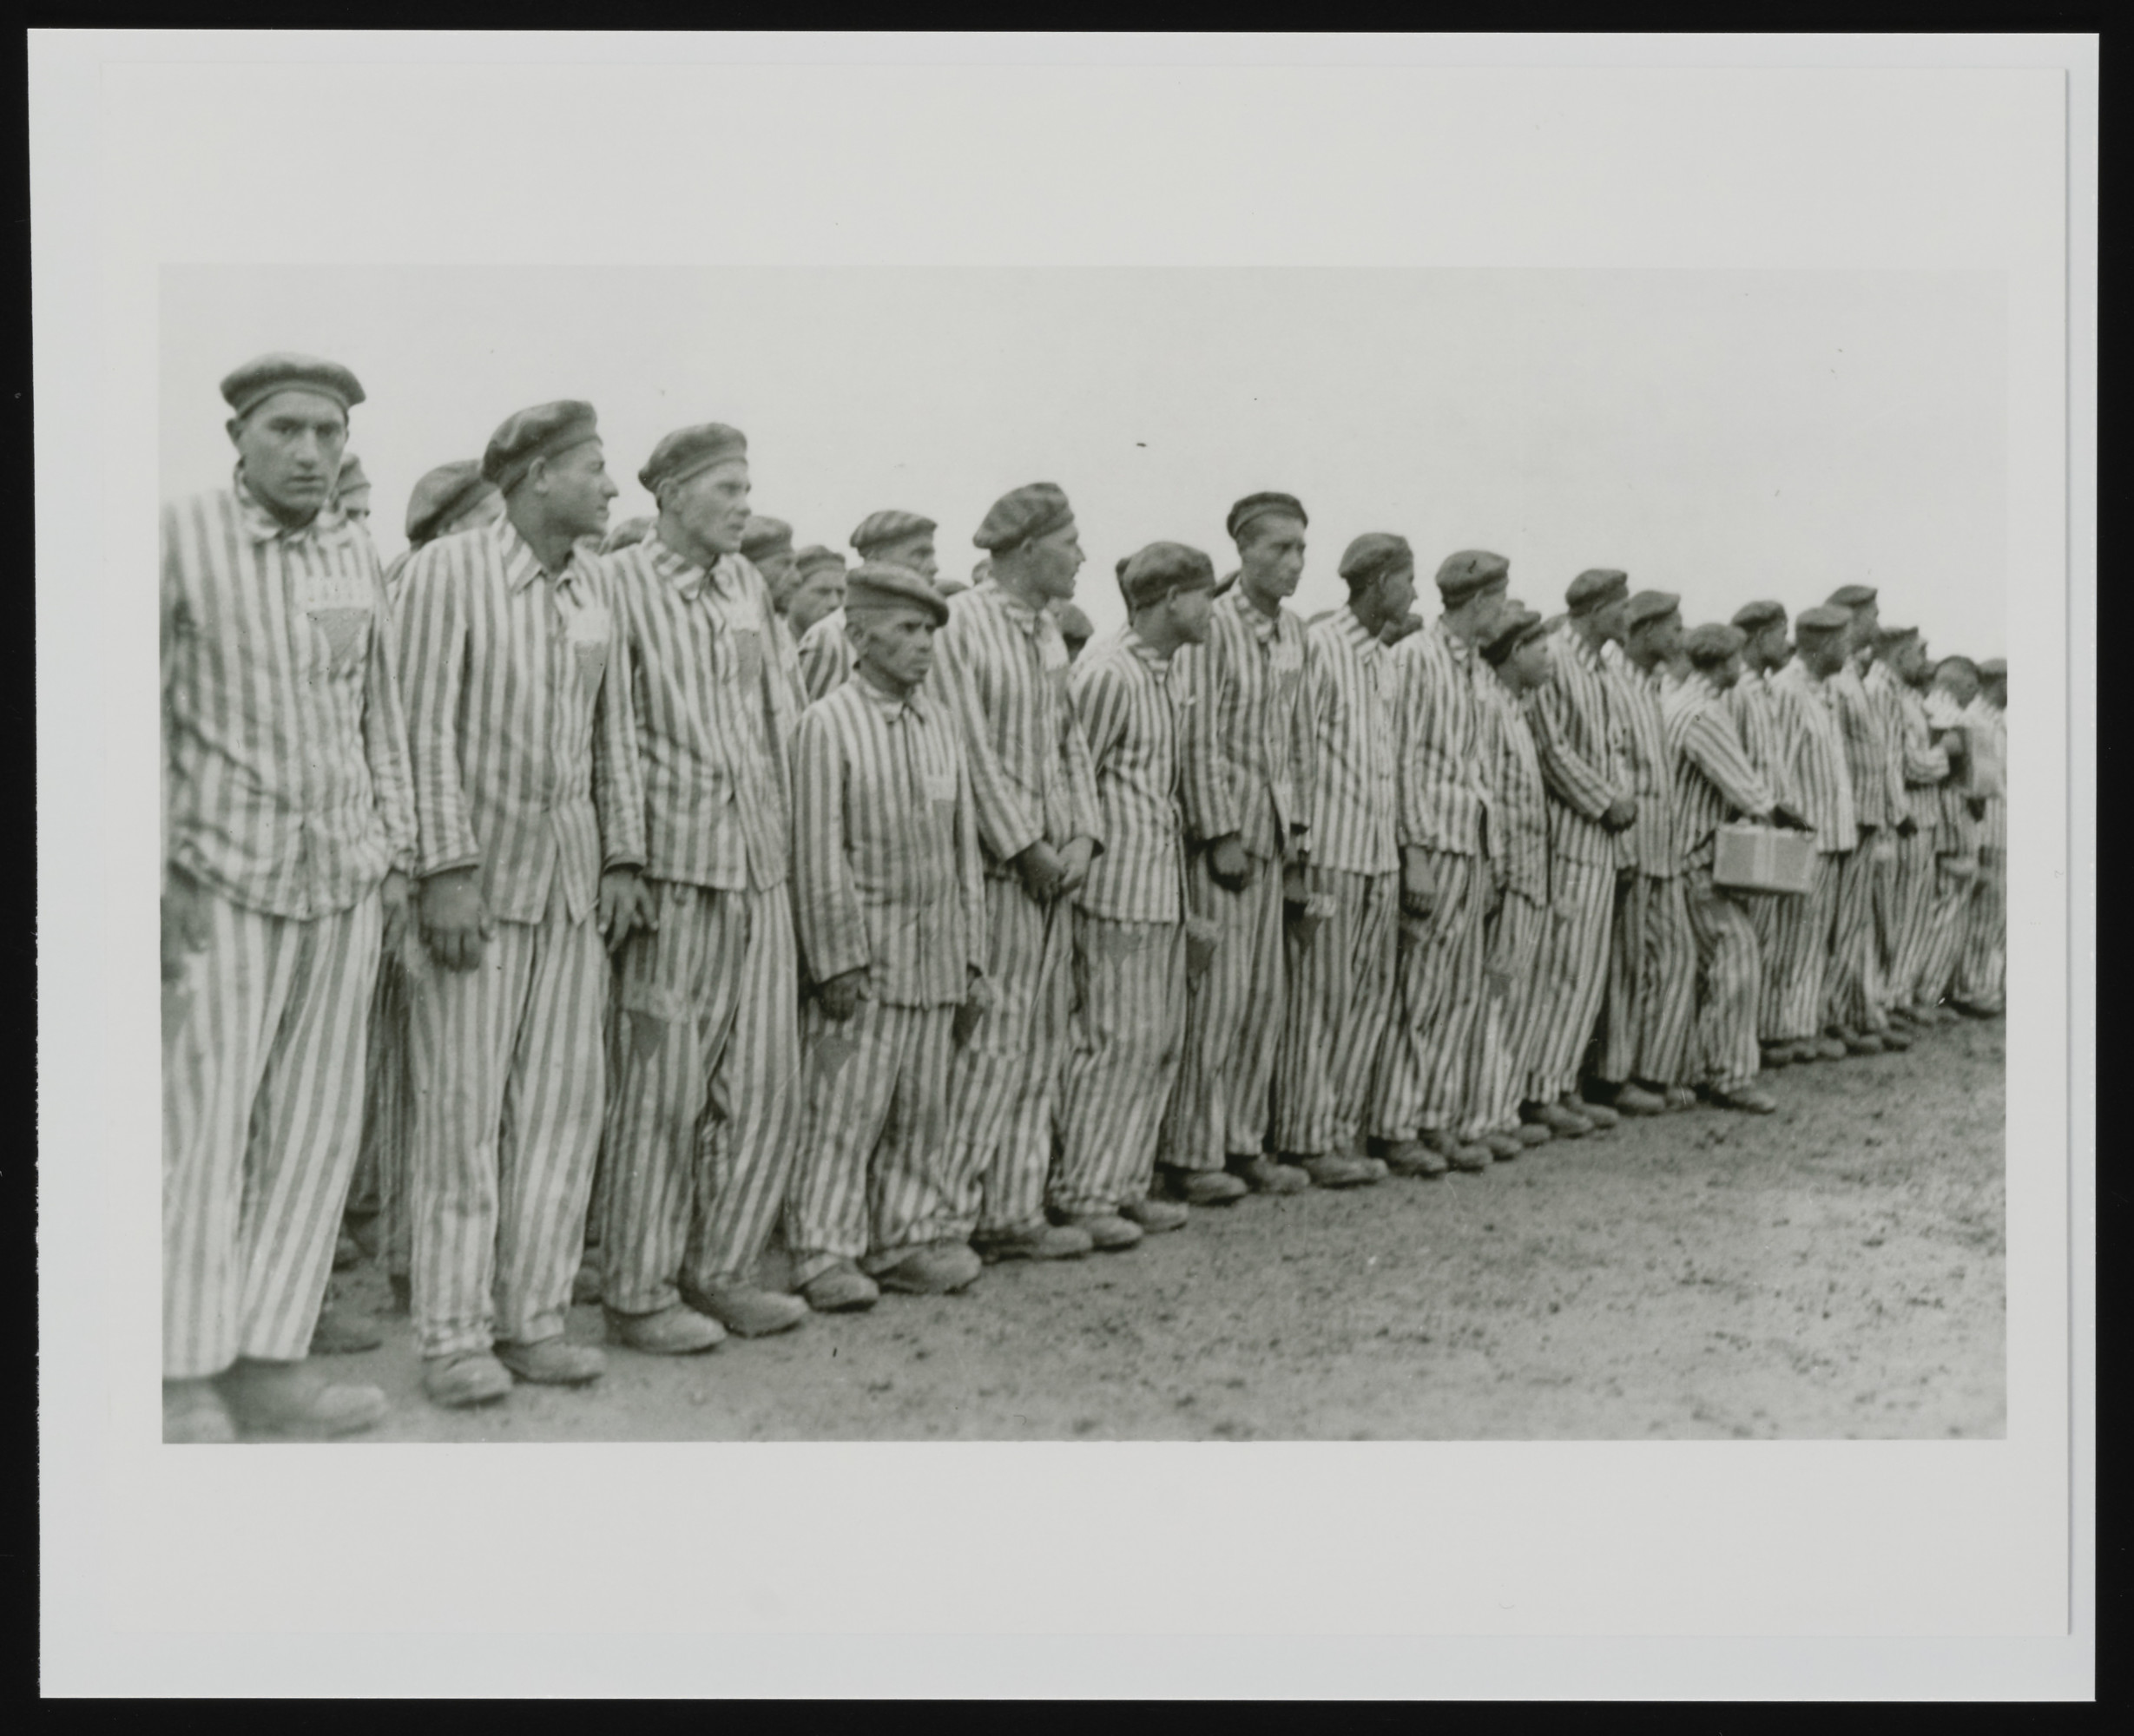 Prisoners at roll call in Buchenwald concentration camp.